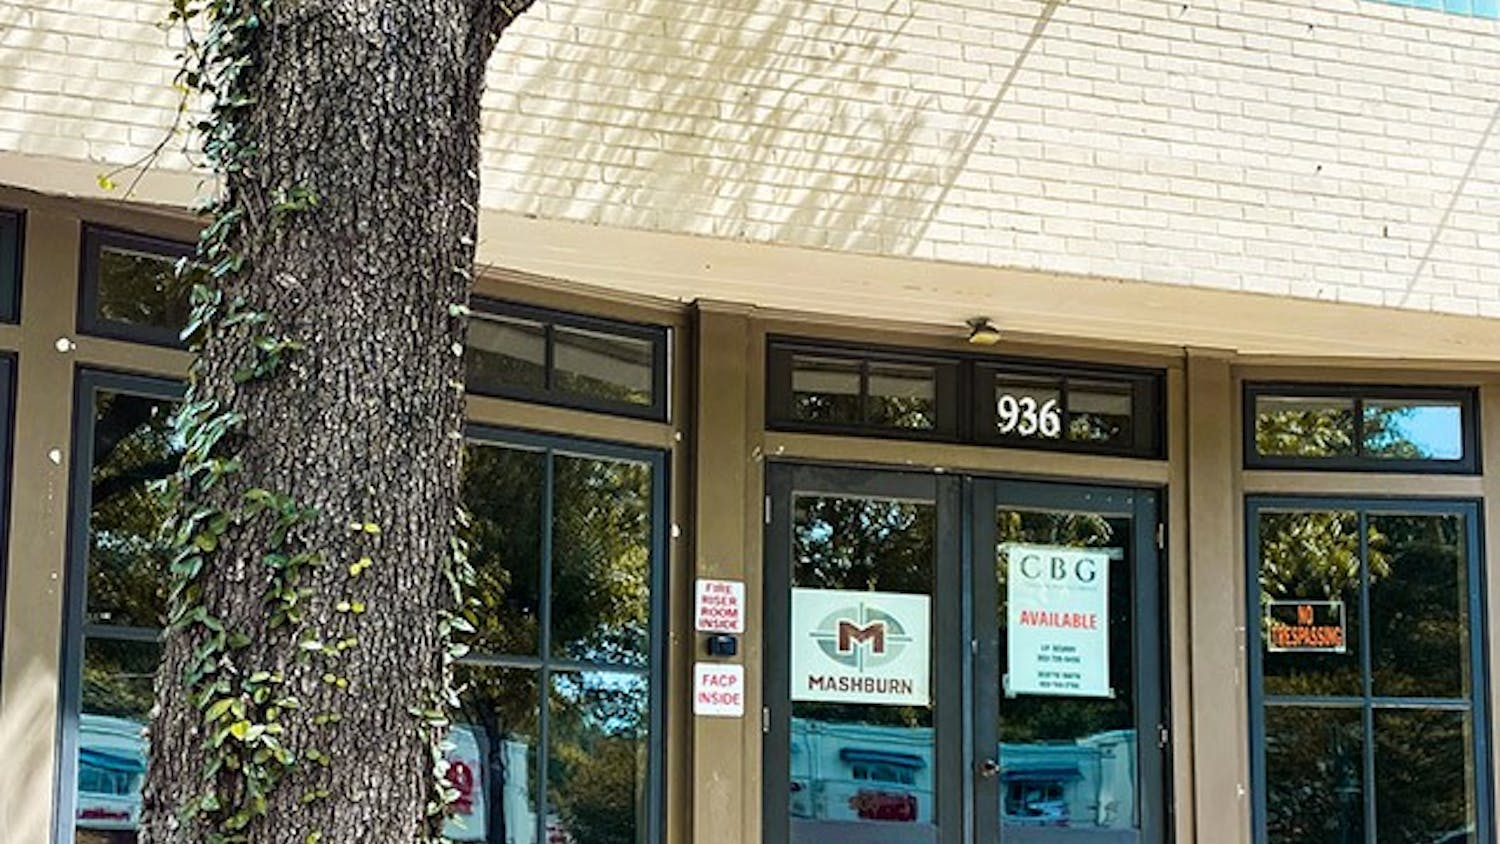 The exterior of the space that will become Flying Biscuit Café at 936 Harden Street. The Five Points restaurant will create an eclectic environment with murals of local landmarks and serve food with a Southern flair.